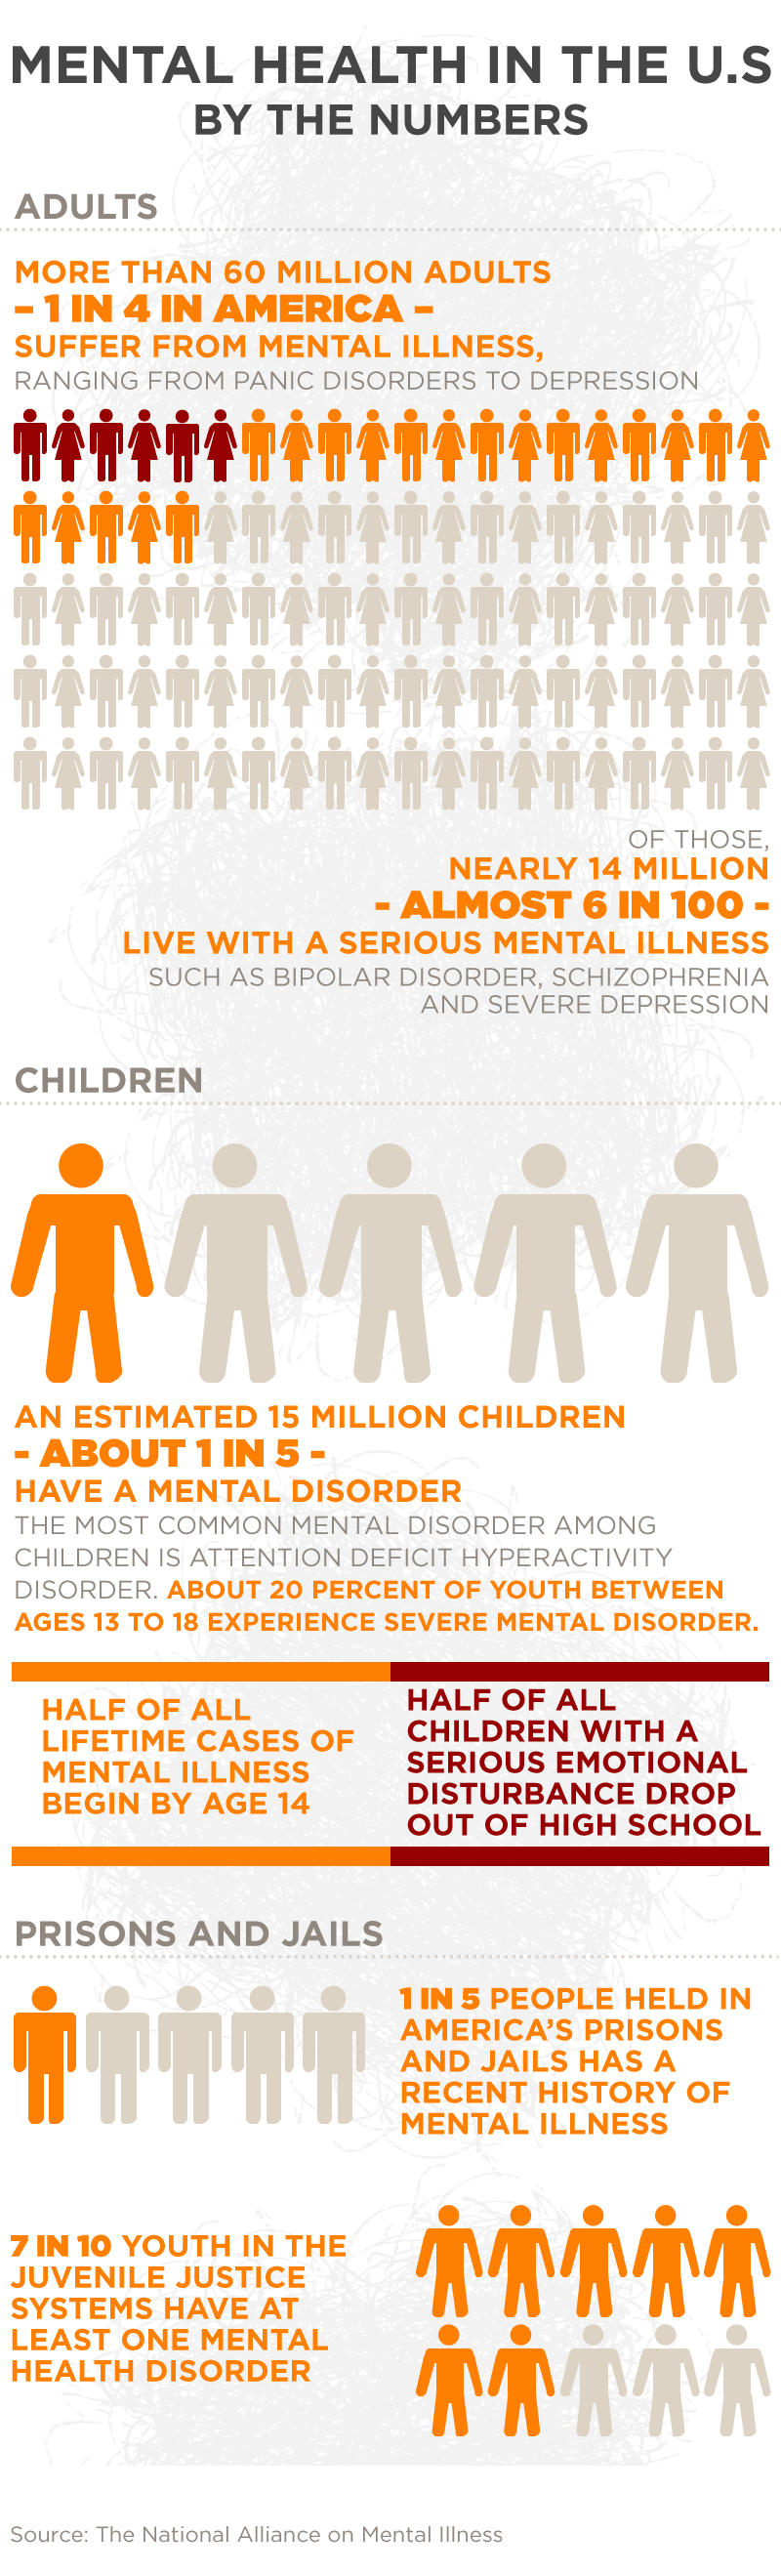 adult-children-mental-health-disorders-infographic